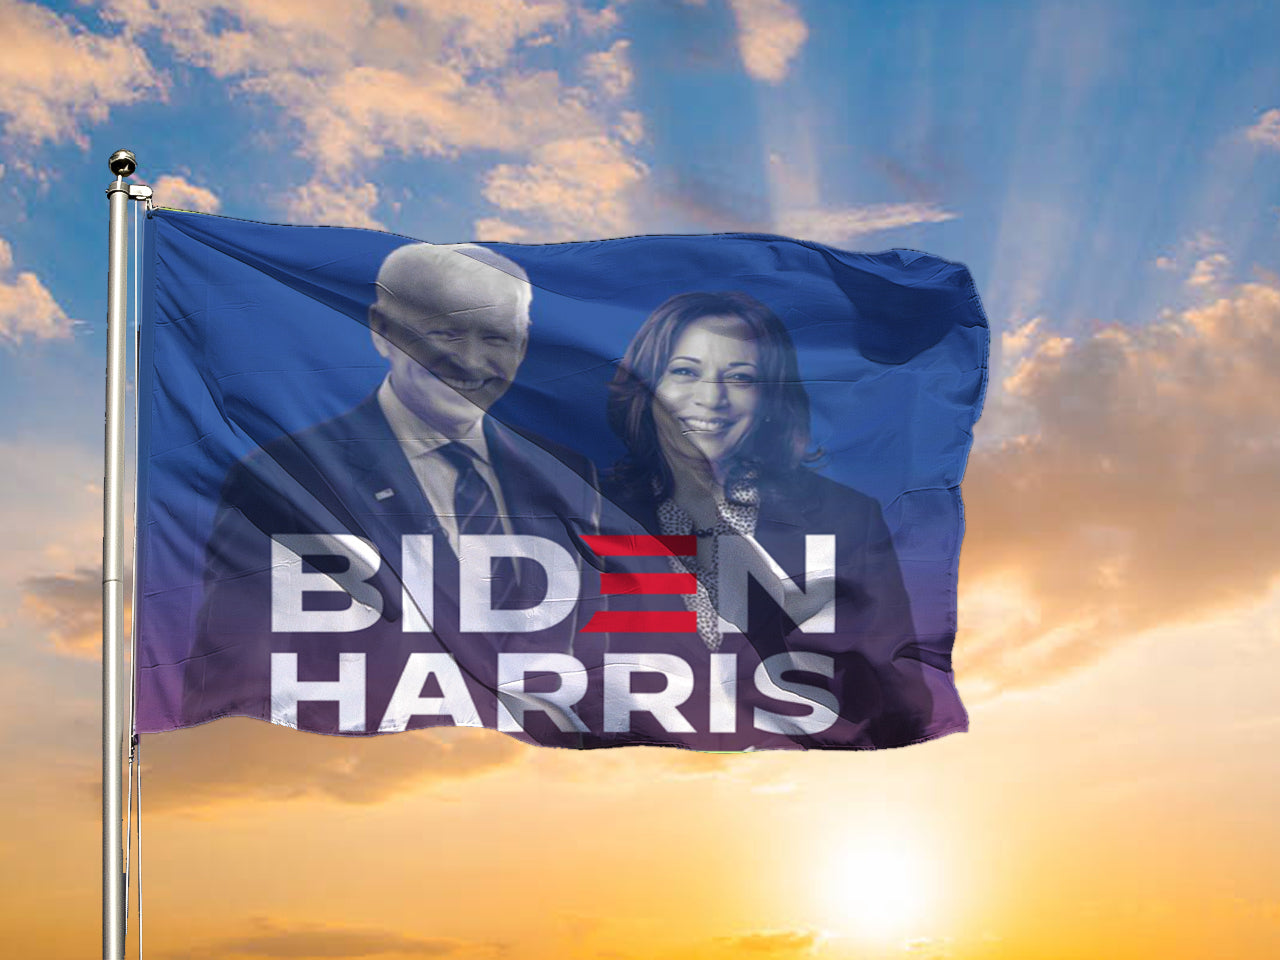 Joe Biden Harris Flag Vote For Biden President 2020 Flags